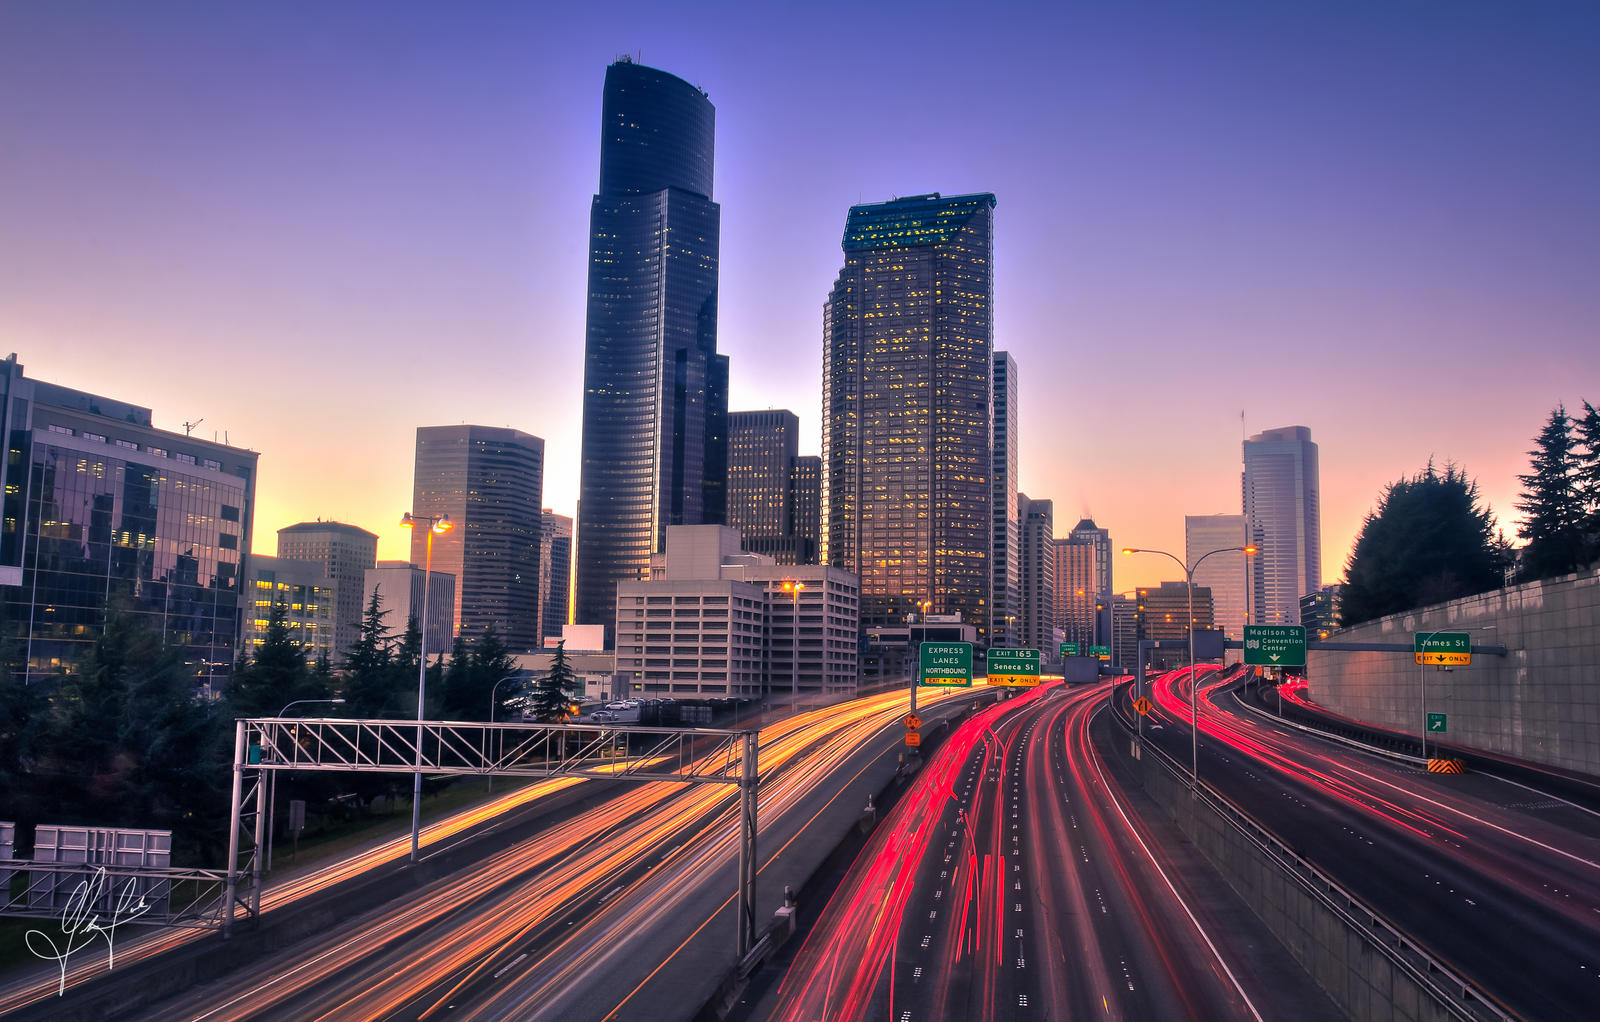 Seattle Rush Hour by ThatFunk